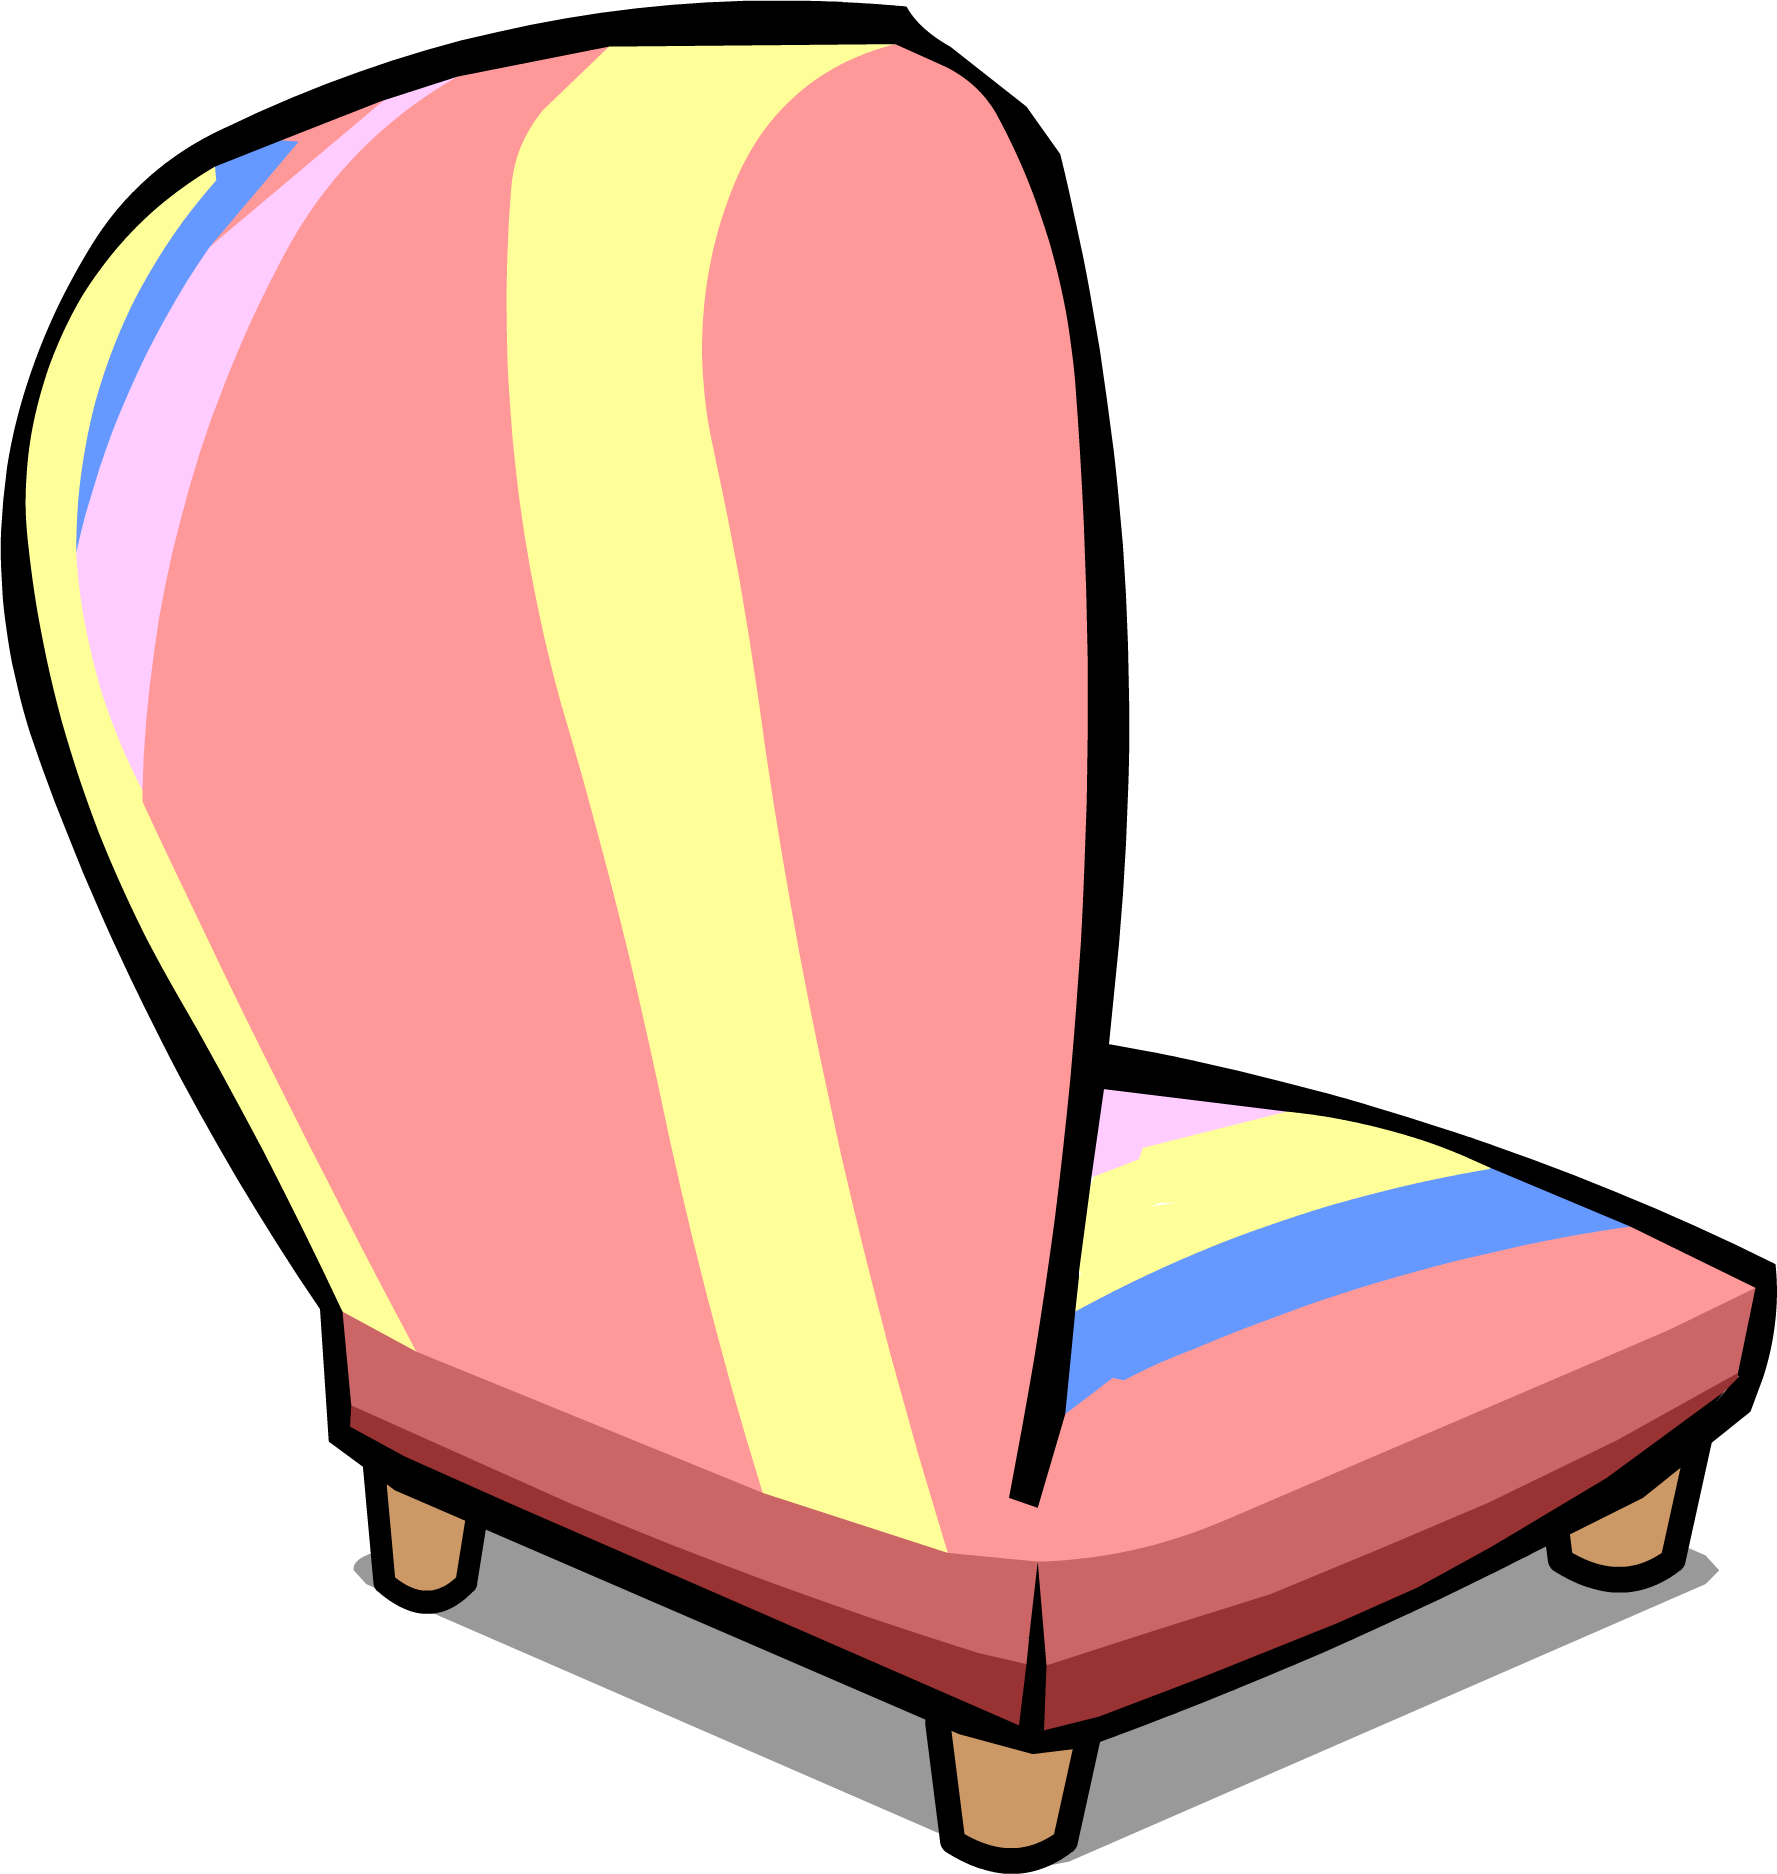 Furniture clipart pink chair. Image sprite png club